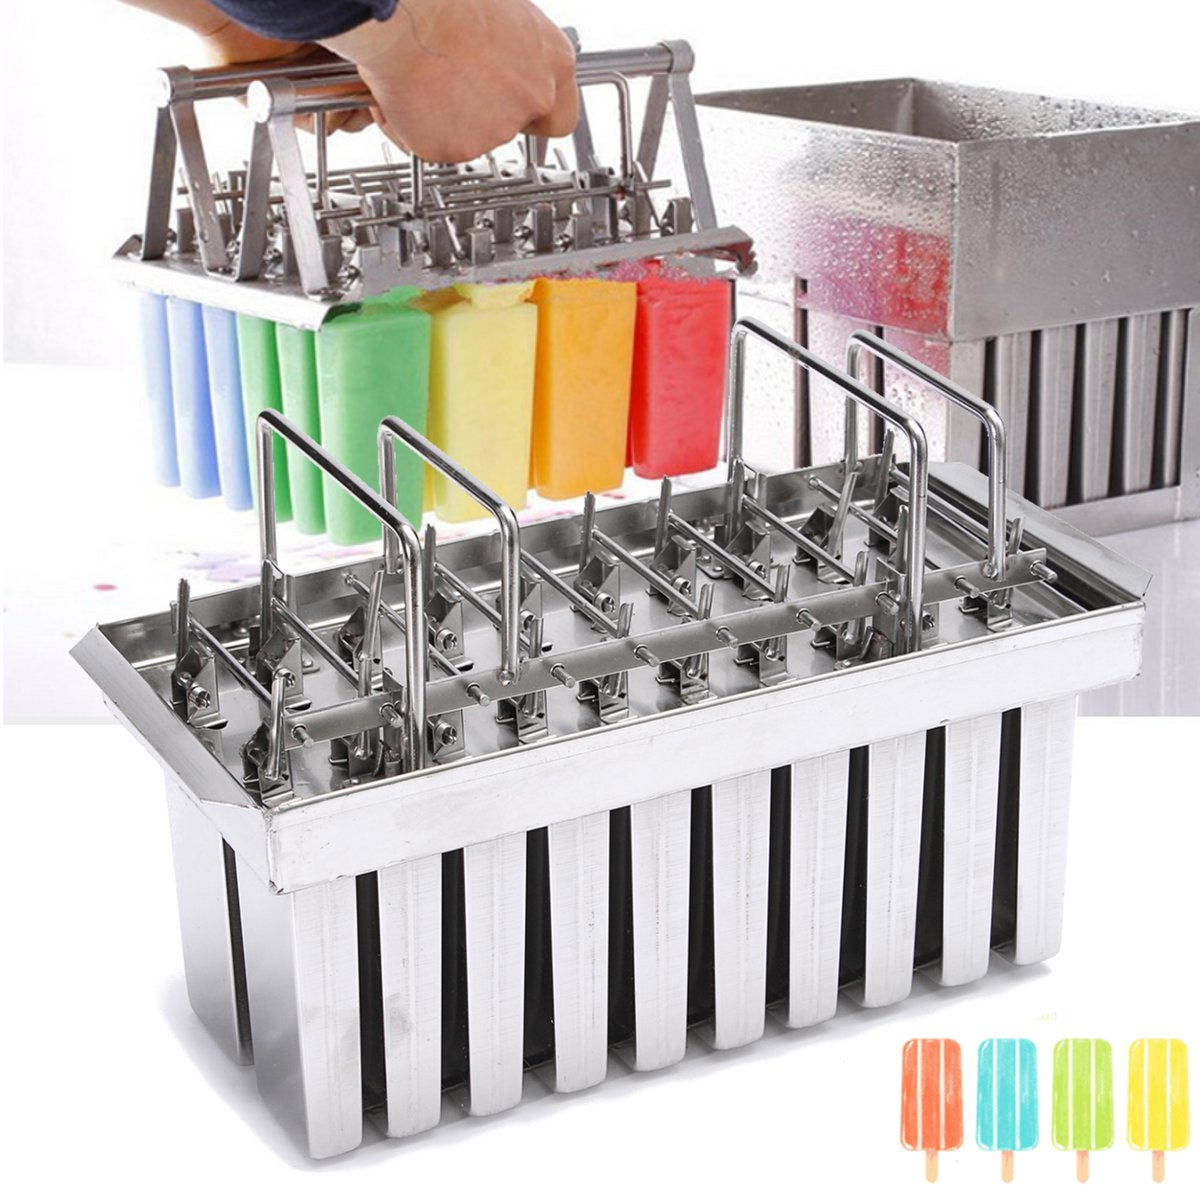 Stainless Steel Ice Pop Molds Machine Ice Lolly 20Pcs Popsicles Mould Stick Holder Home Kitchen Shop Ice Cream Maker Large 100 120pcs h commercial ice lolly maker ice cream mold machine ice cream lolly machine frozen ice lolly maker zx40a